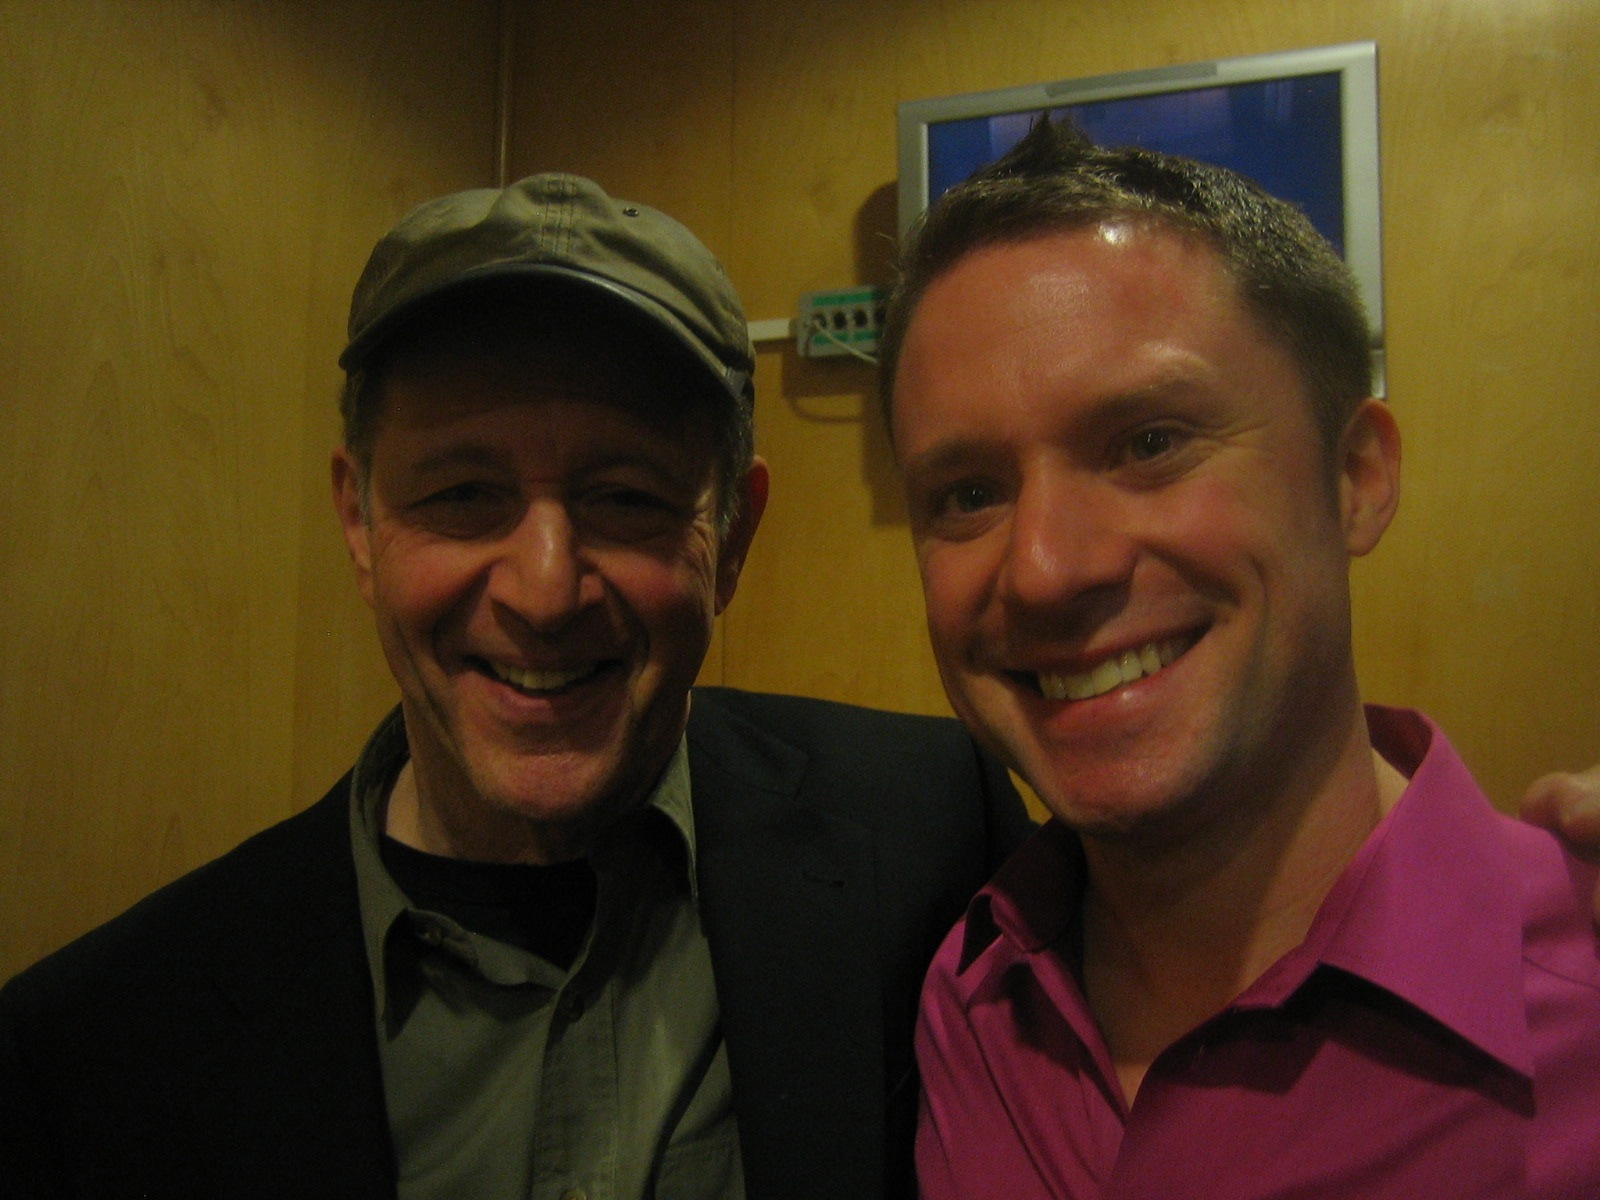 With Steve Reich at London's South Bank Centre in February 2010, on the first occasion we were to meet.